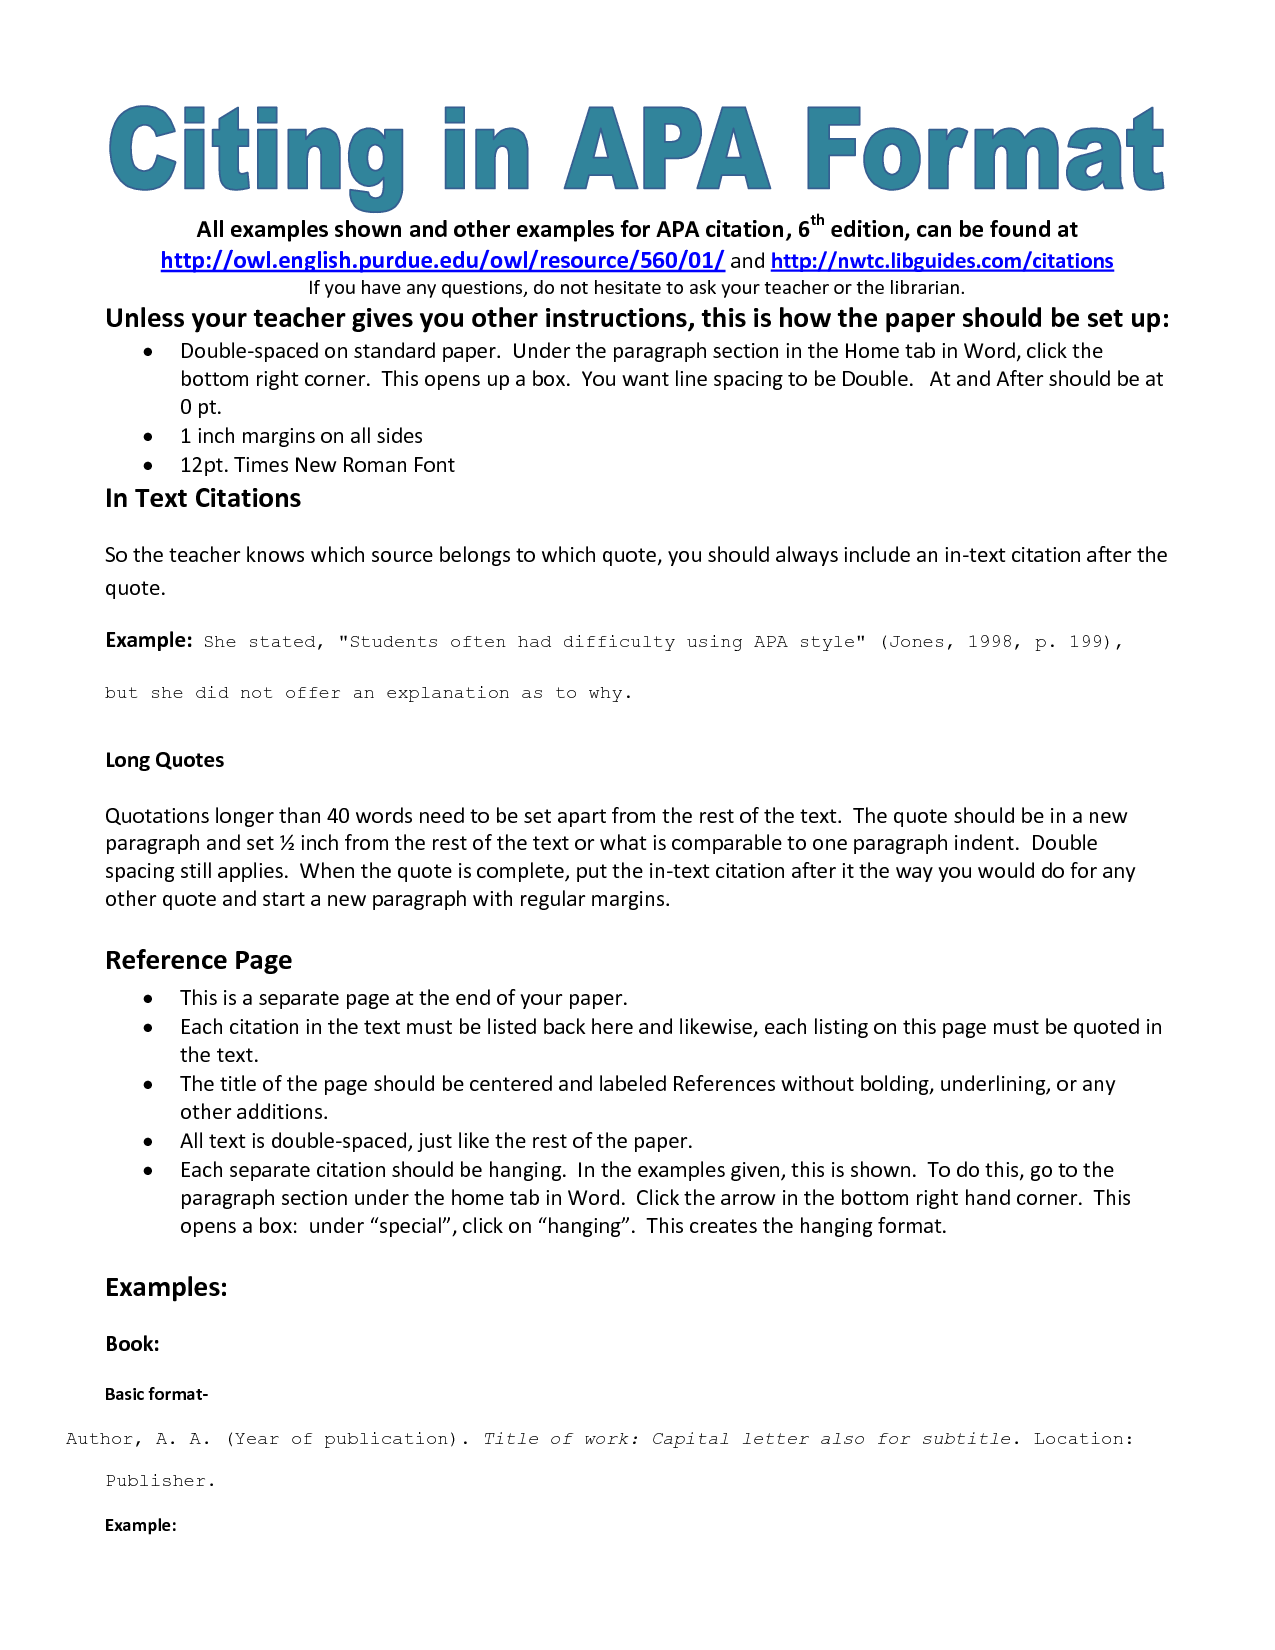 001 Apa Citation Format Paper Research Awesome Conference Style Model Unpublished Full